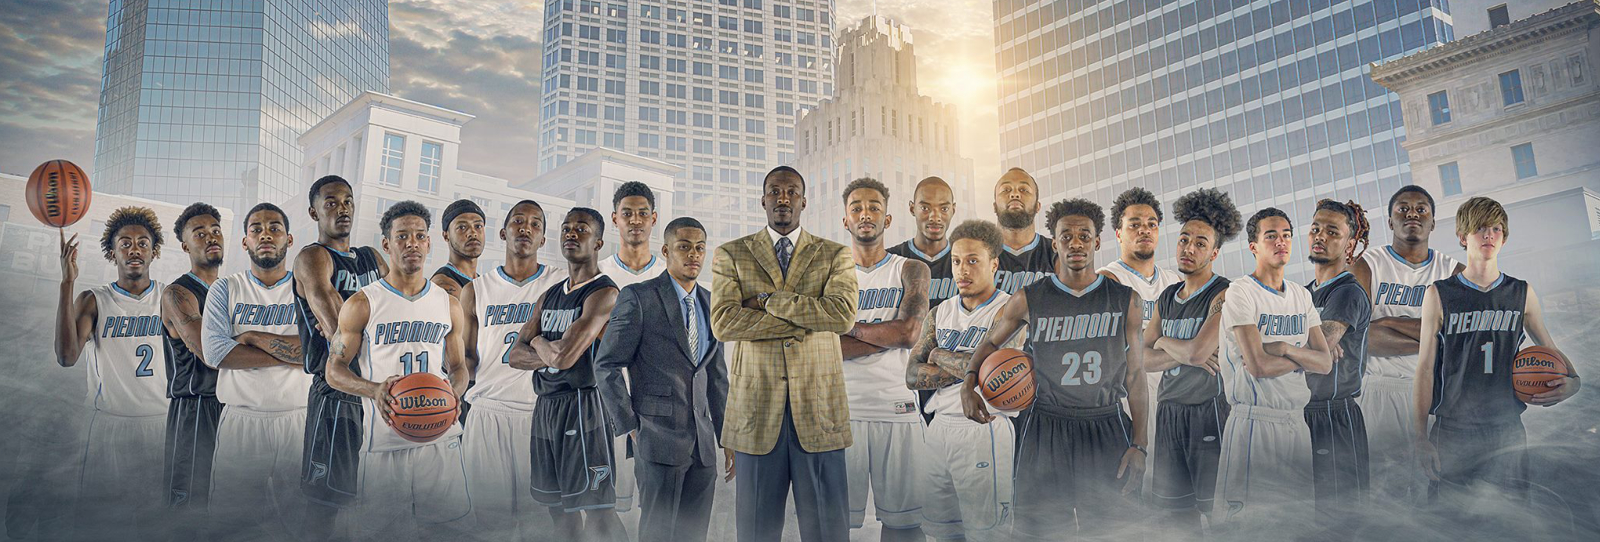 Photo of Piedmont International University's Mens Basketball Team and Coach Josh Howard